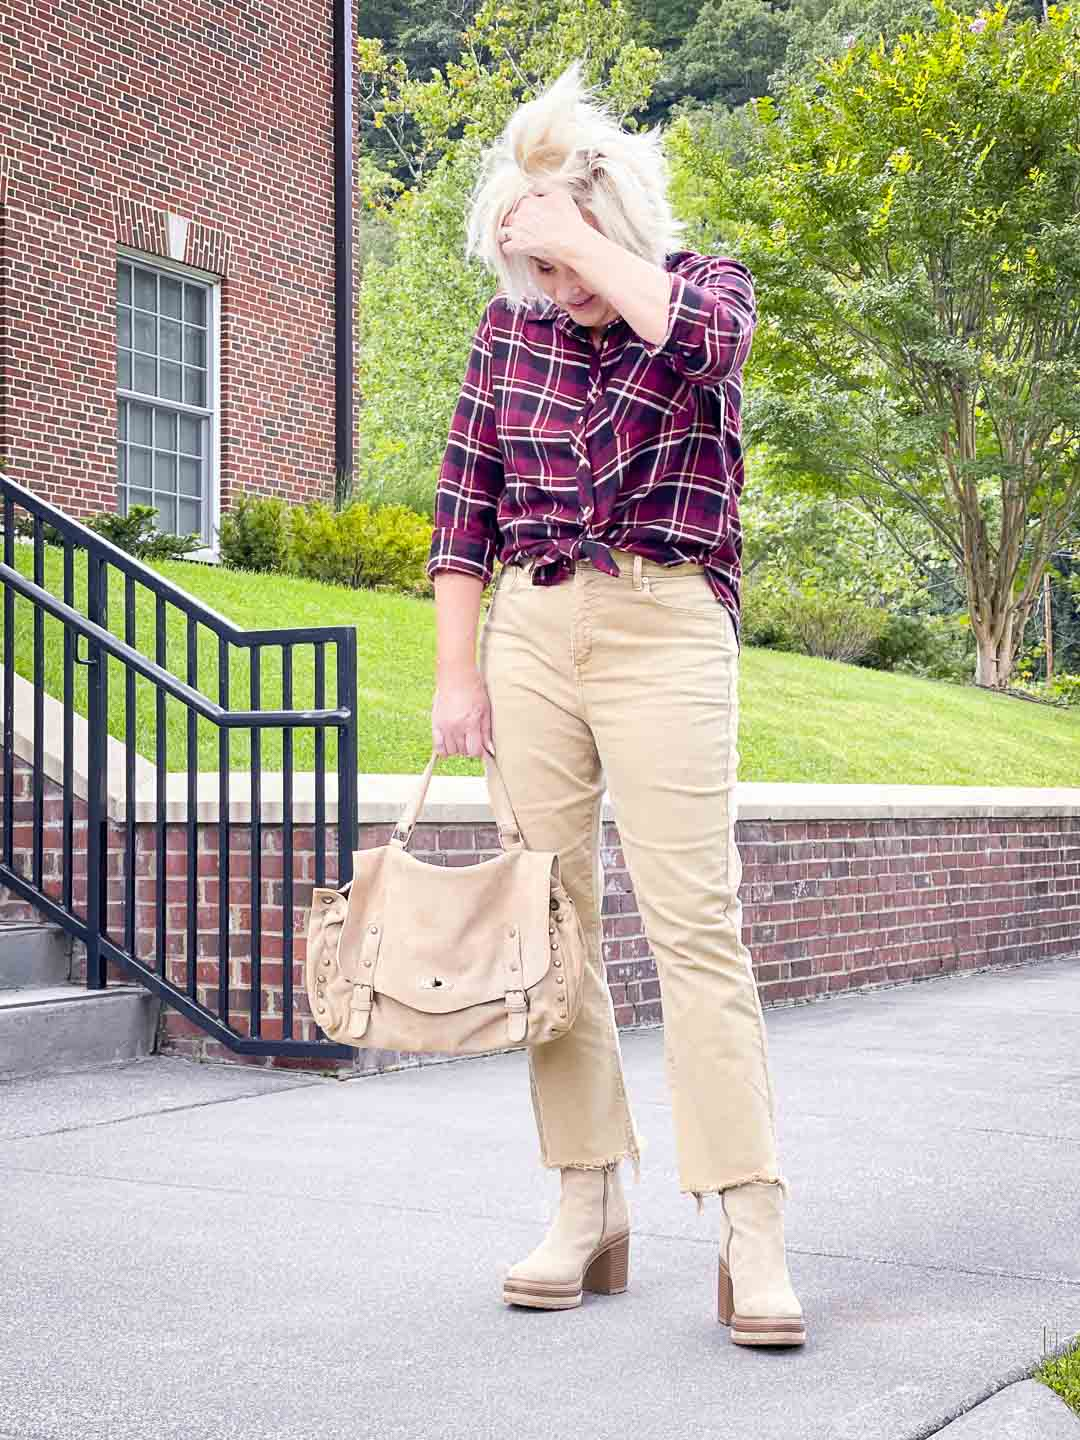 Over 40 Fashion Blogger, Tania Stephens's hair is flying everywhere while she is wearing a plaid flannel shirt with crop jeans